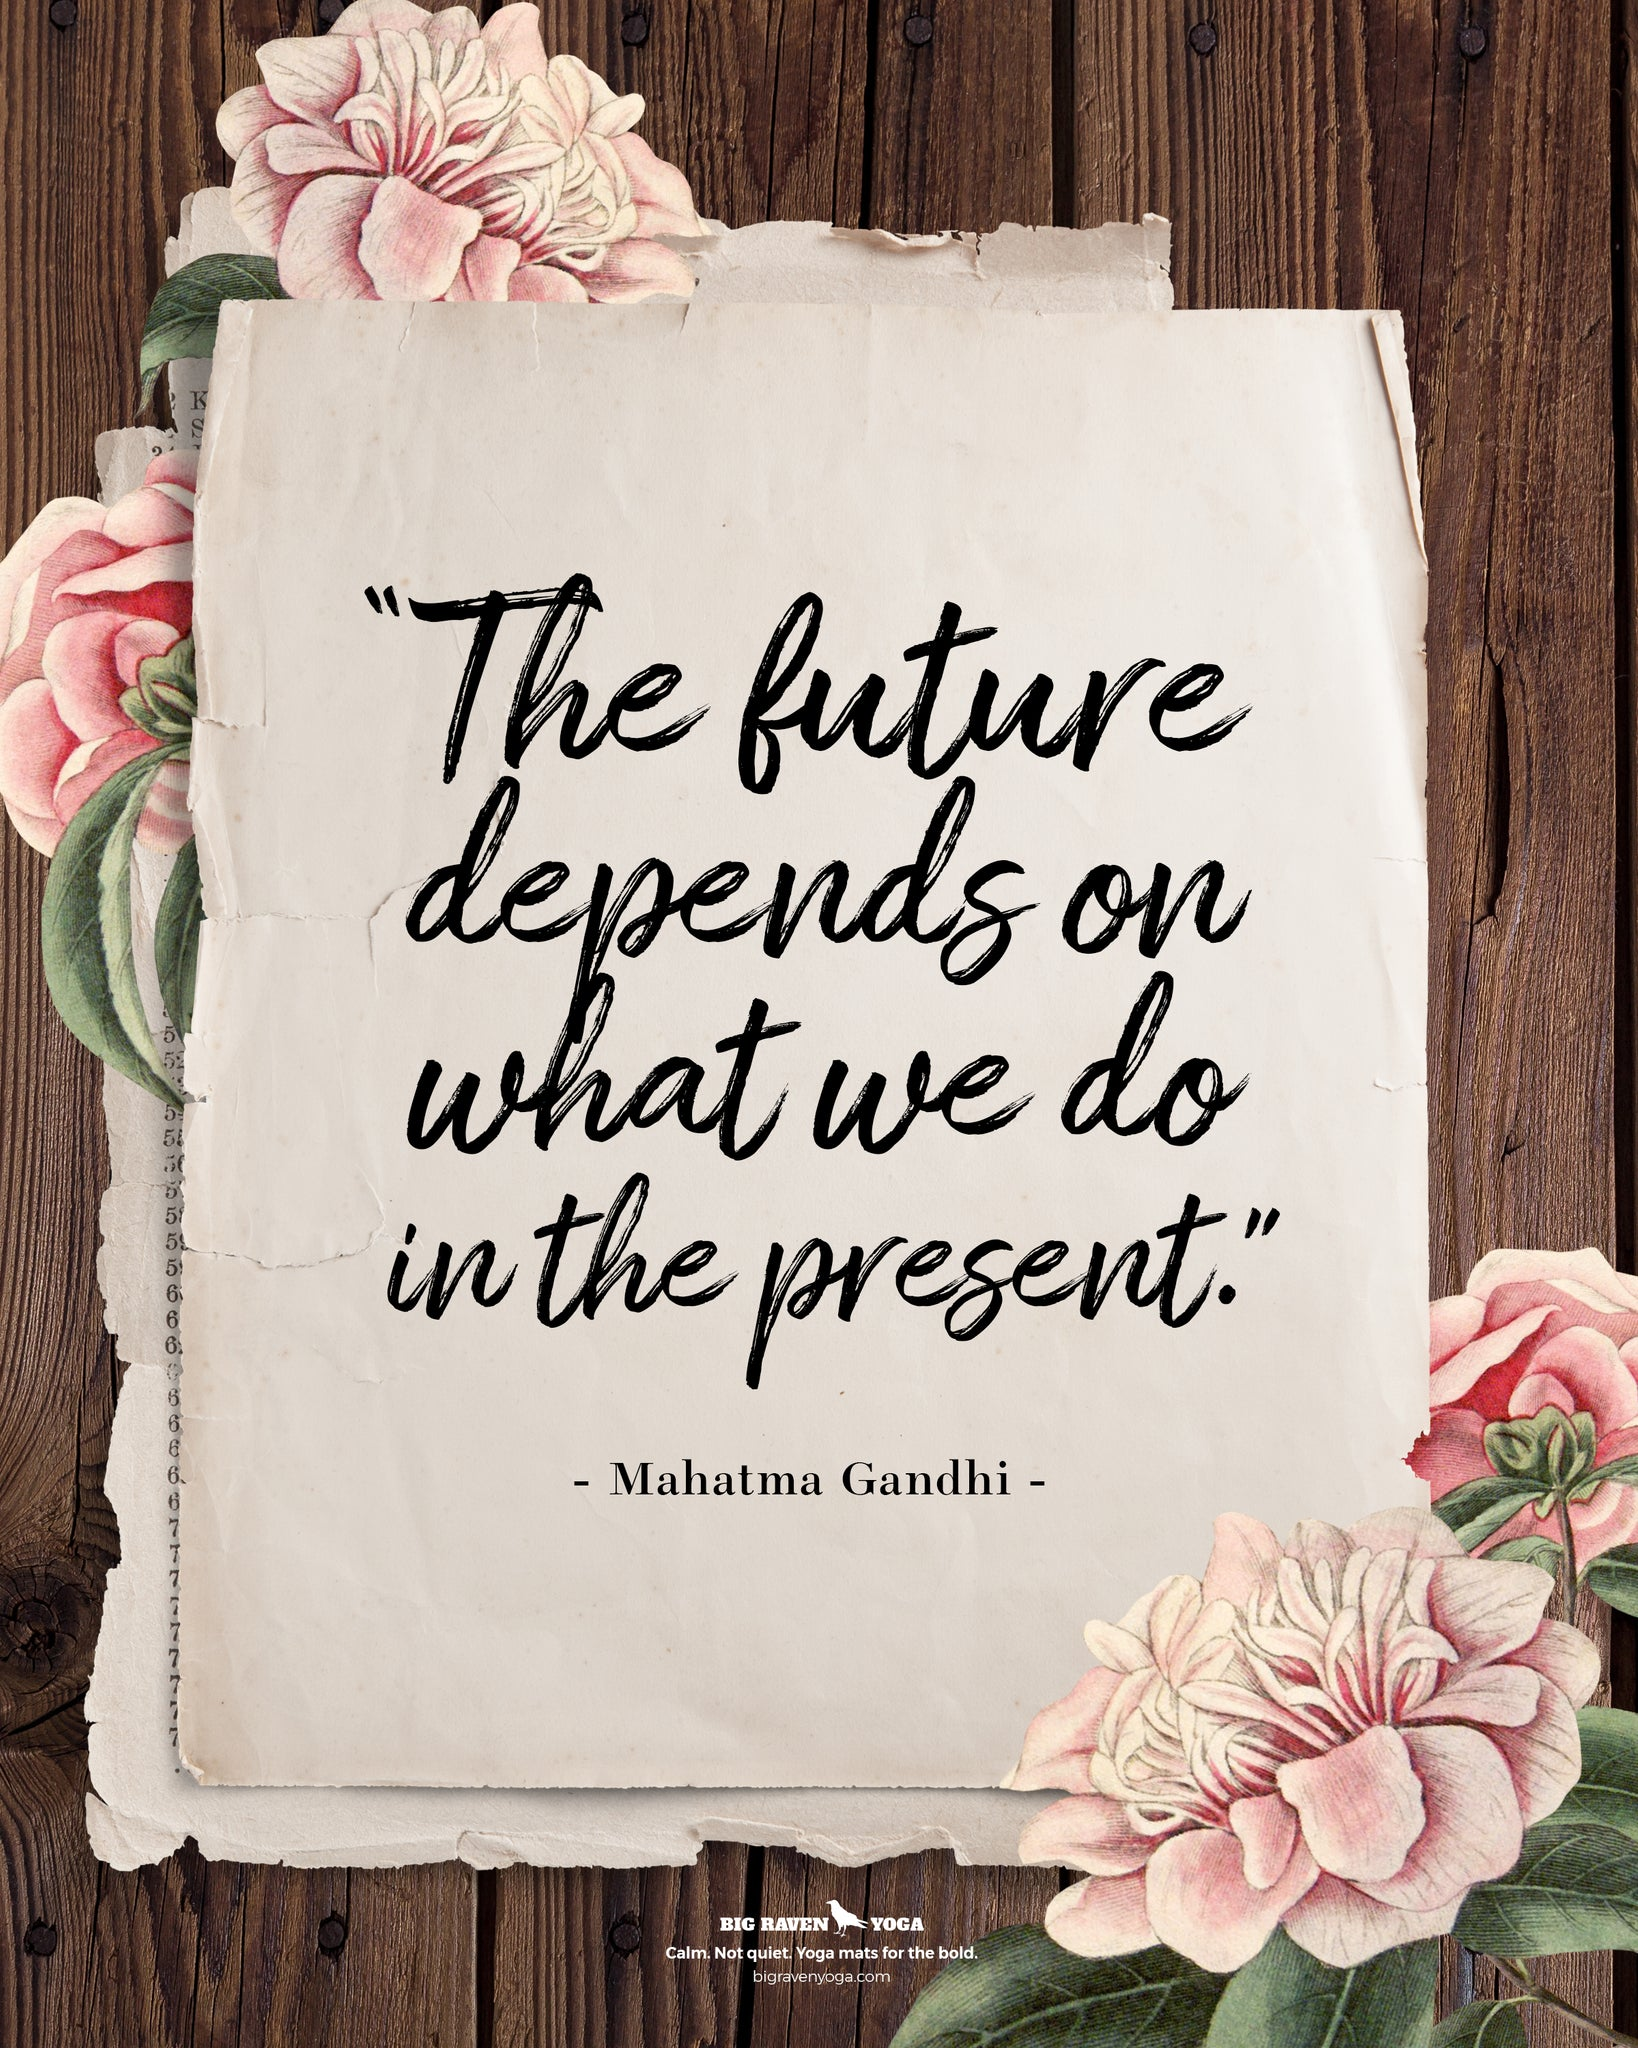 Quote: The future depends on what we do in the present. Mahatma Gandhi.